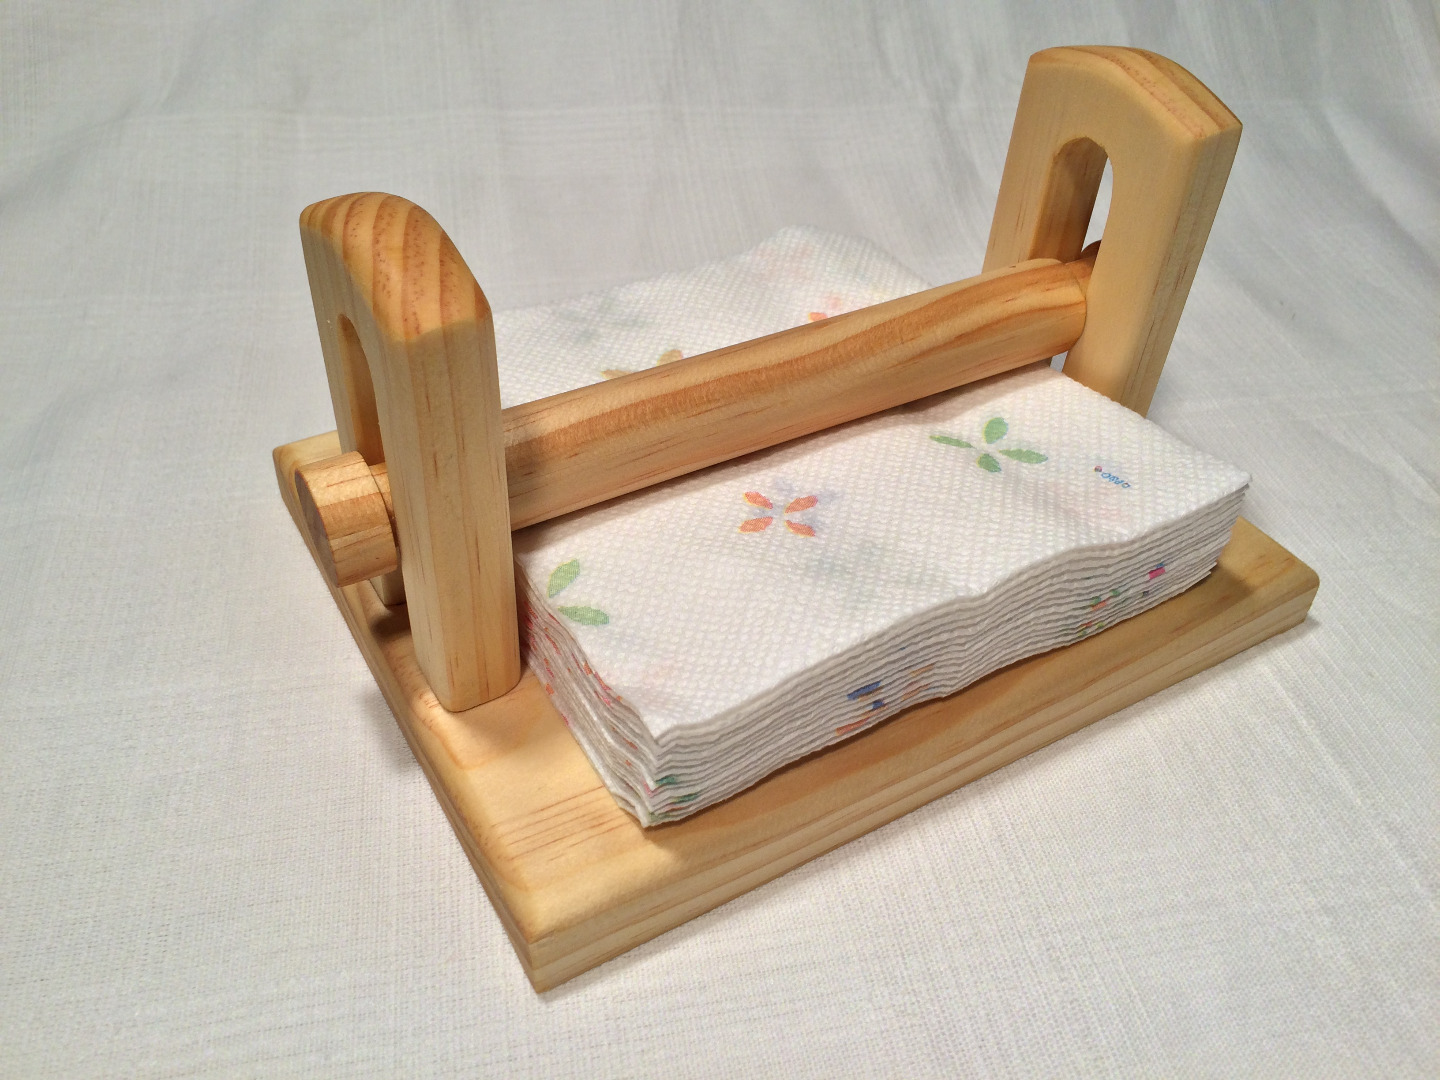 Make A Napkin Holder With Hand Tools 7 Steps With Pictures Instructables